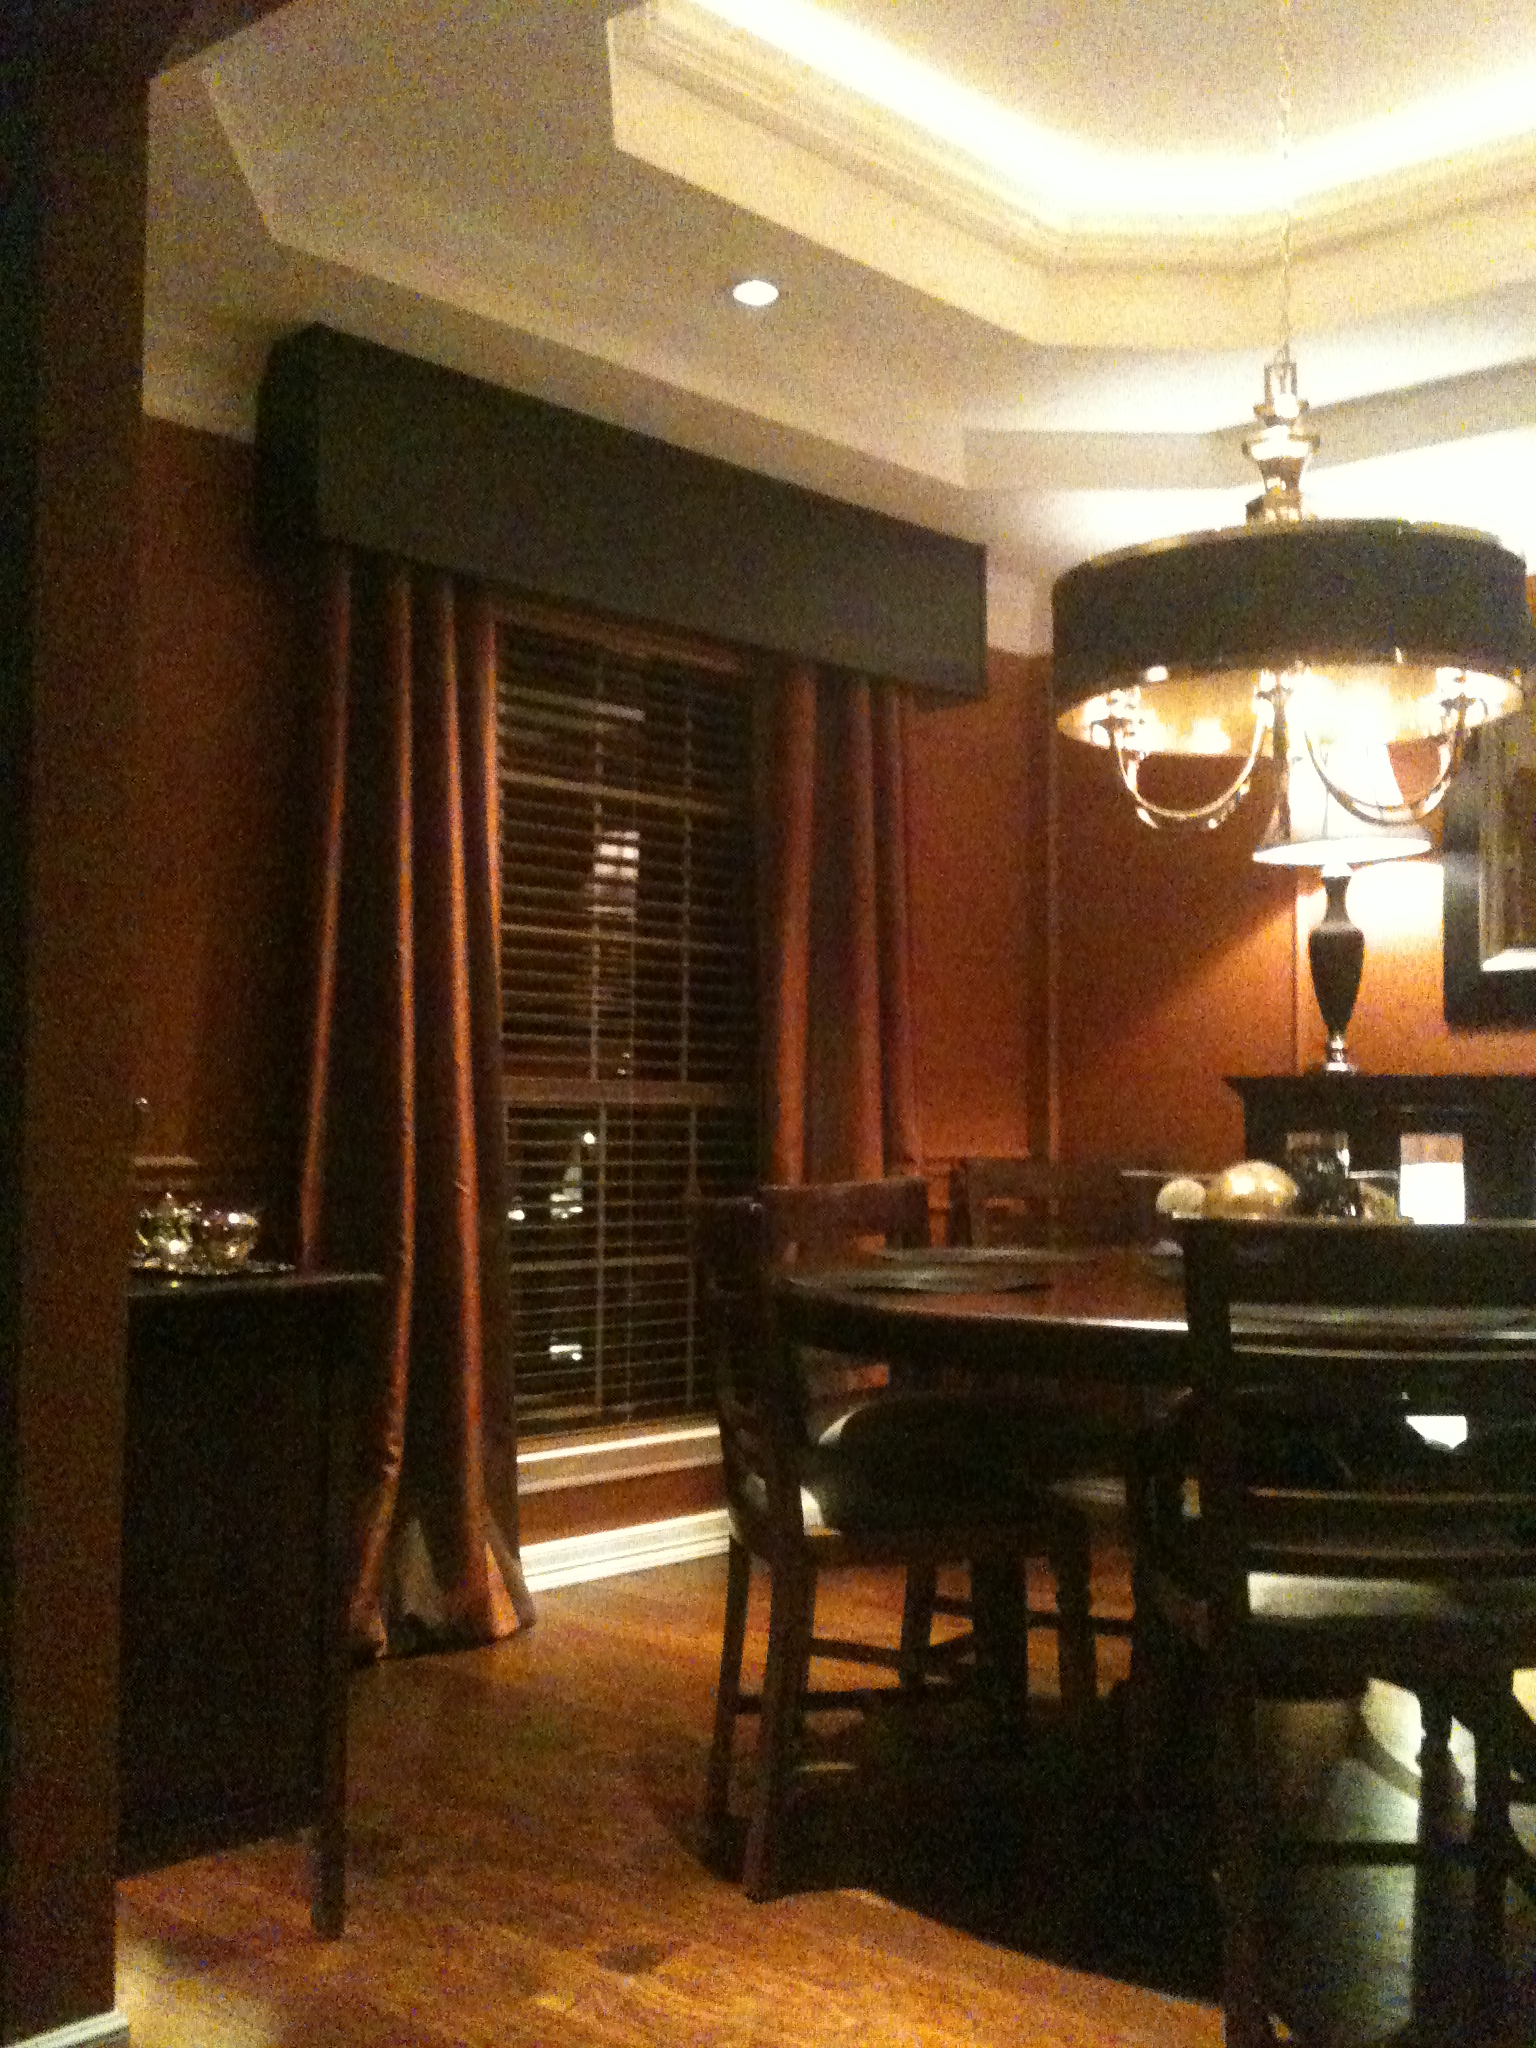 Dining room remodel austin total home care for W austin in room dining menu